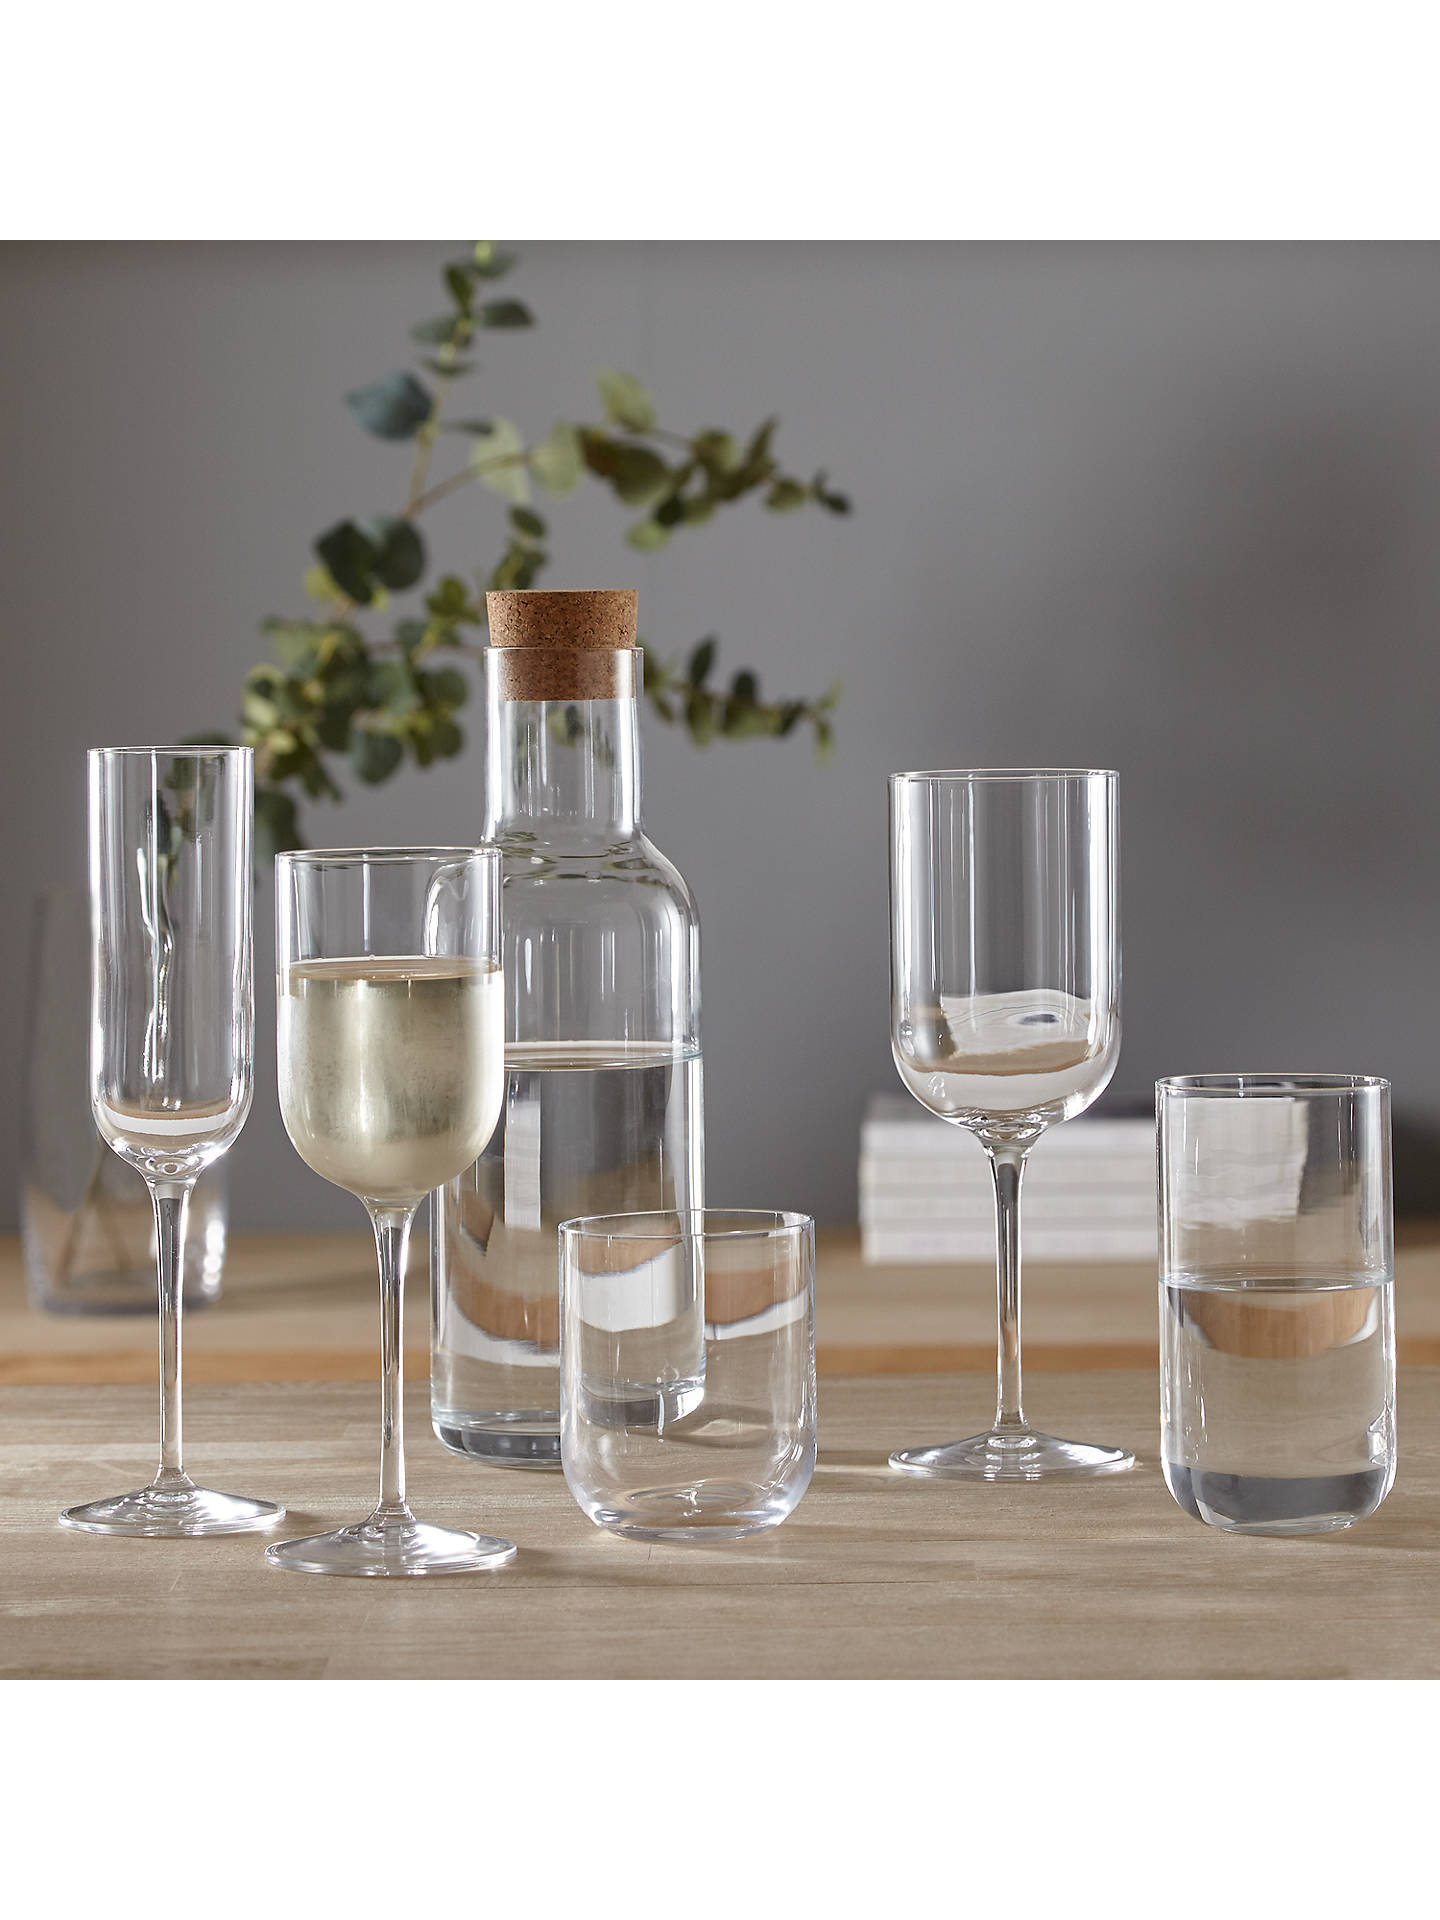 BuyJohn Lewis & Partners Sublime Carafe With Cork, Clear, 1L Online at johnlewis.com